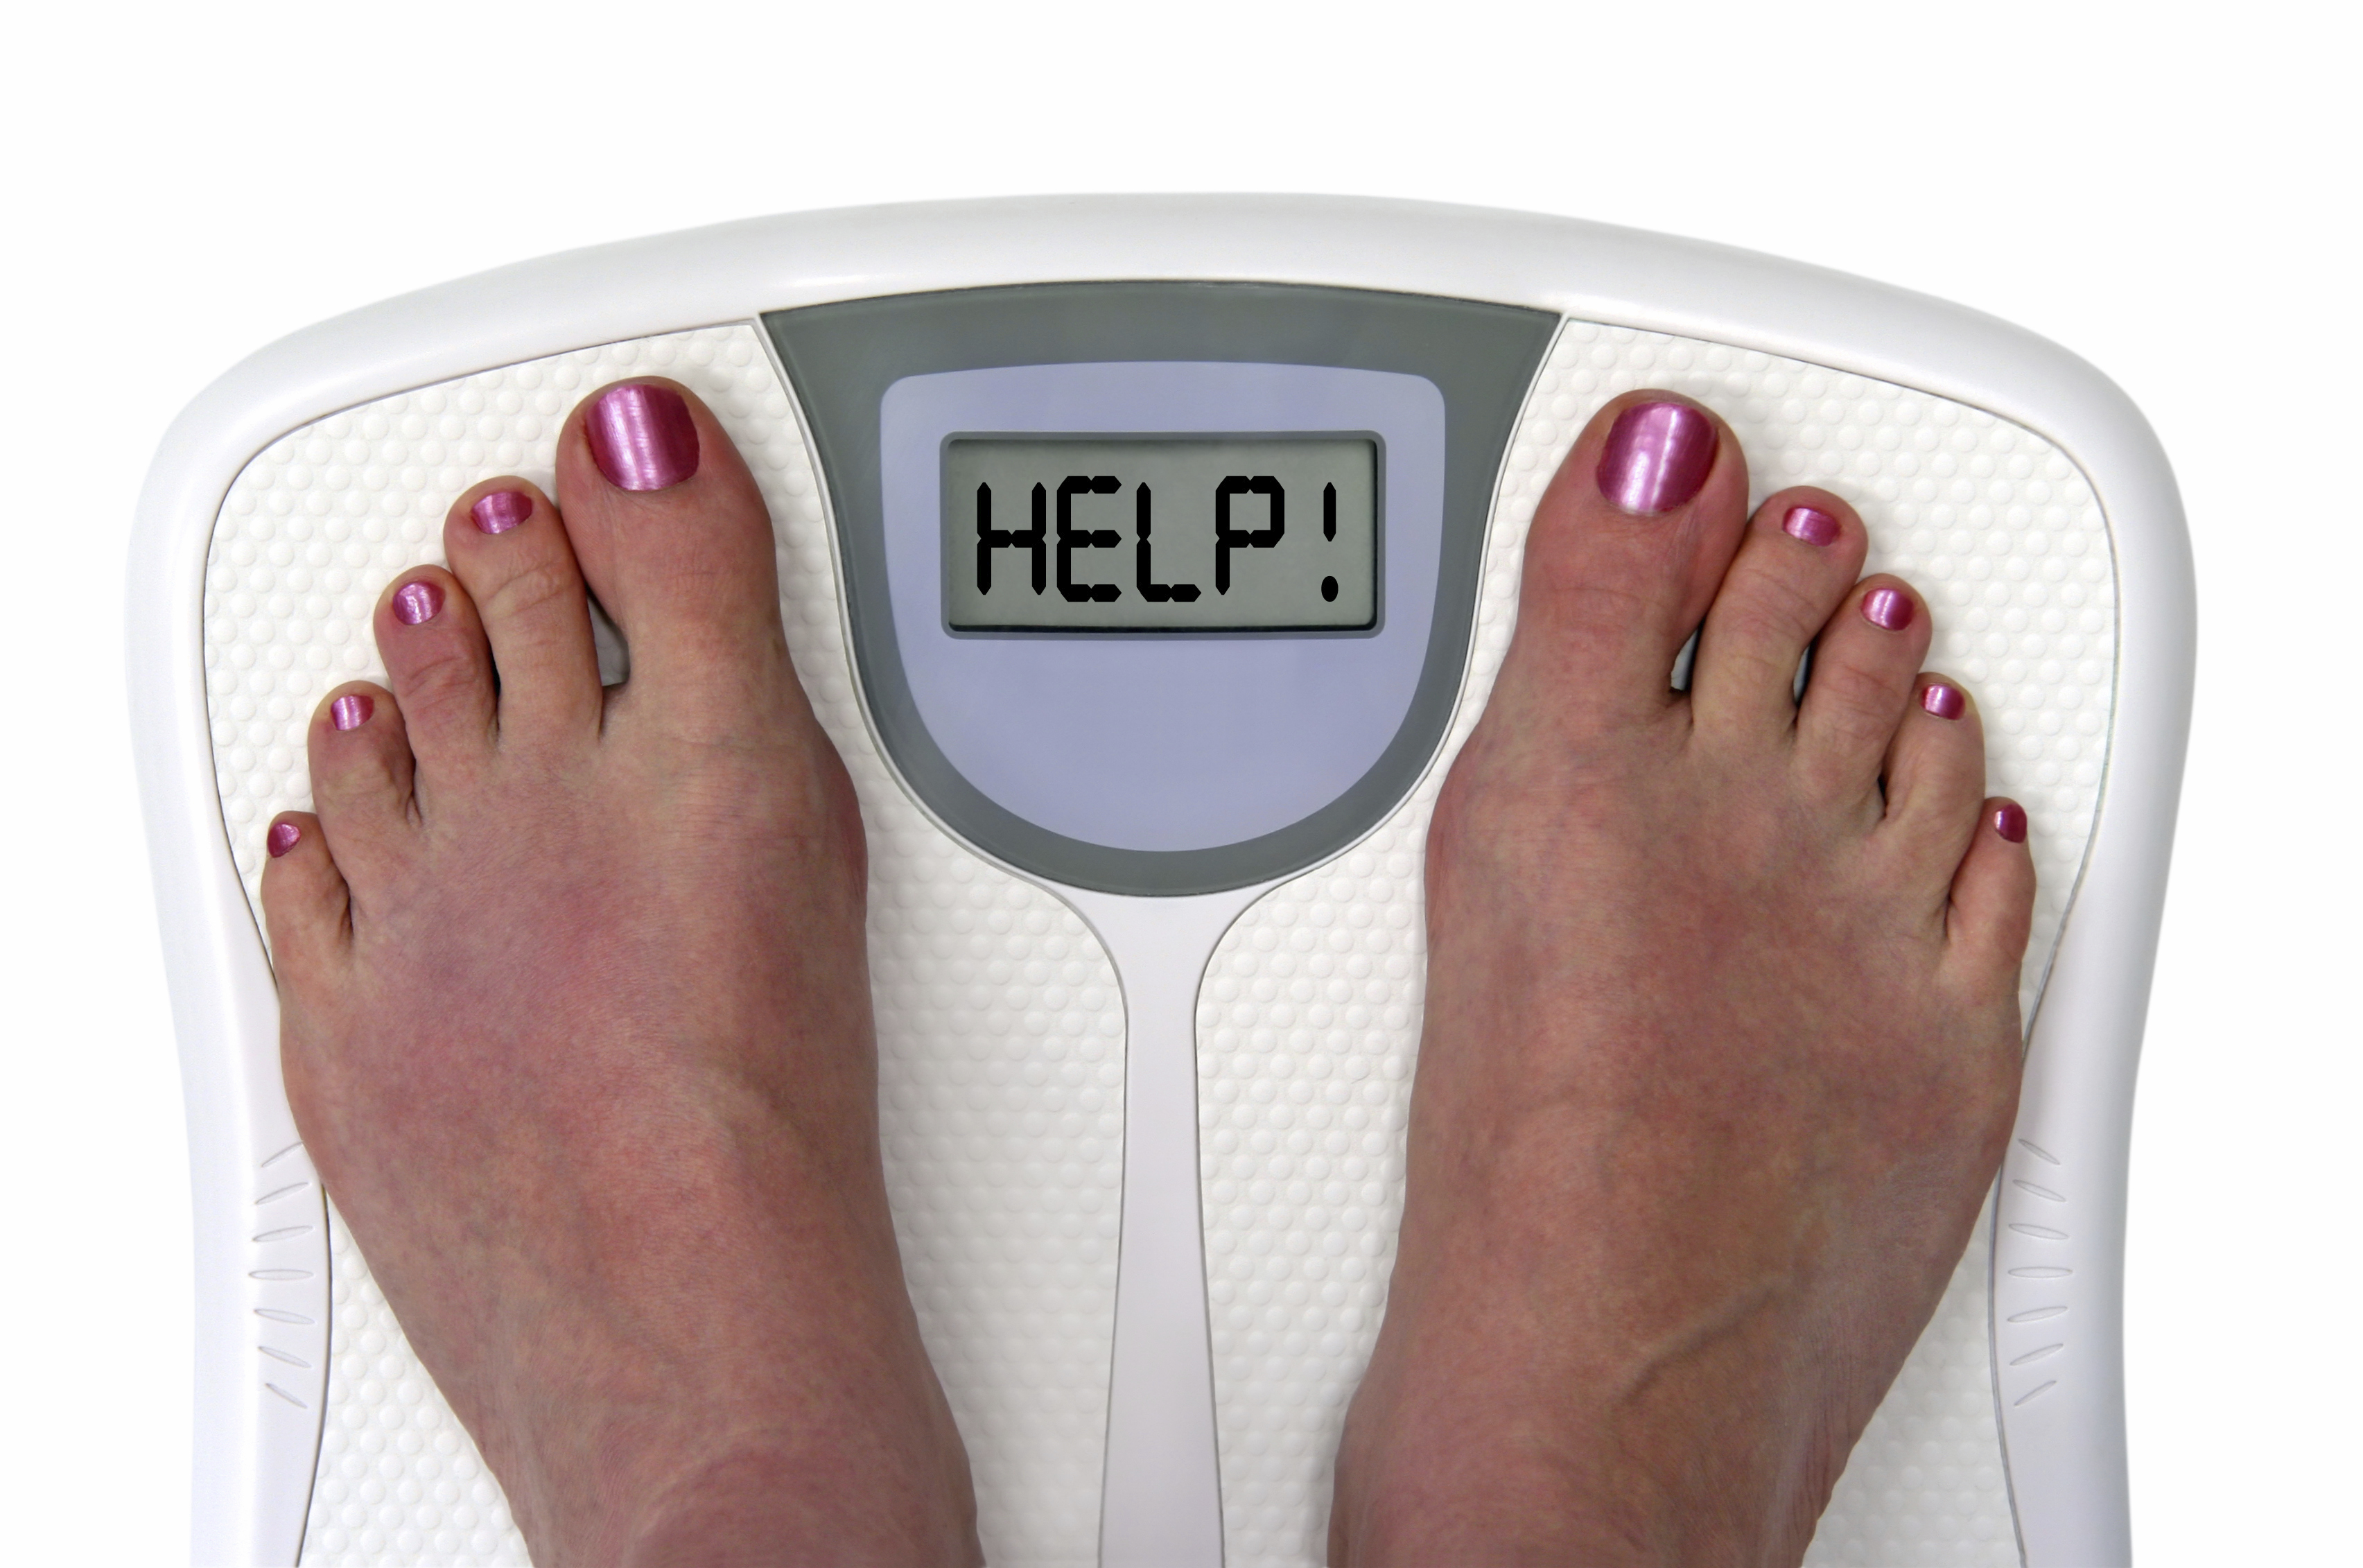 https://www.piedmont.org/media/BlogImages/Weight-loss-scale.jpg